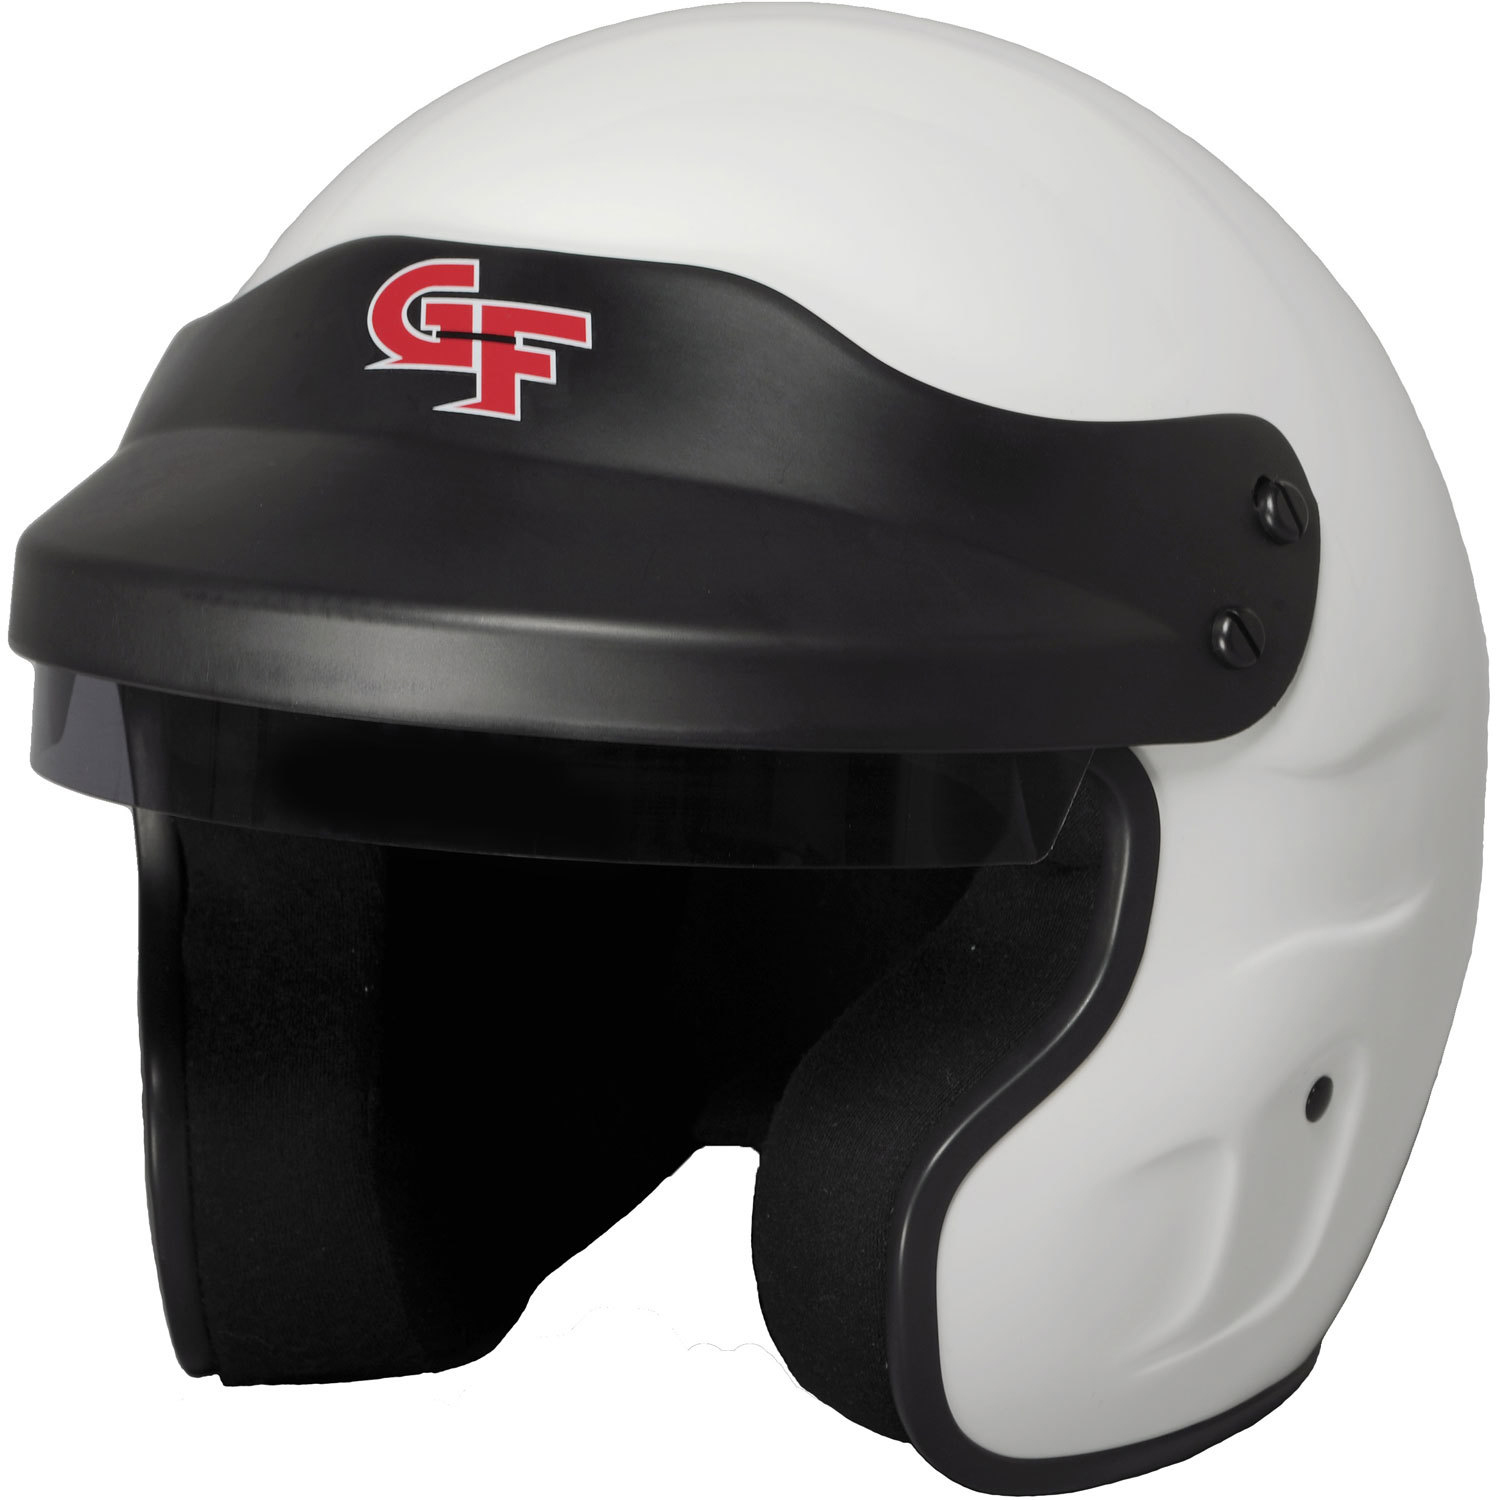 G-Force 13002LRGWH Helmet, GF1, Open Face, Snell SA2020, Head and Neck Support Ready, White, Large, Each